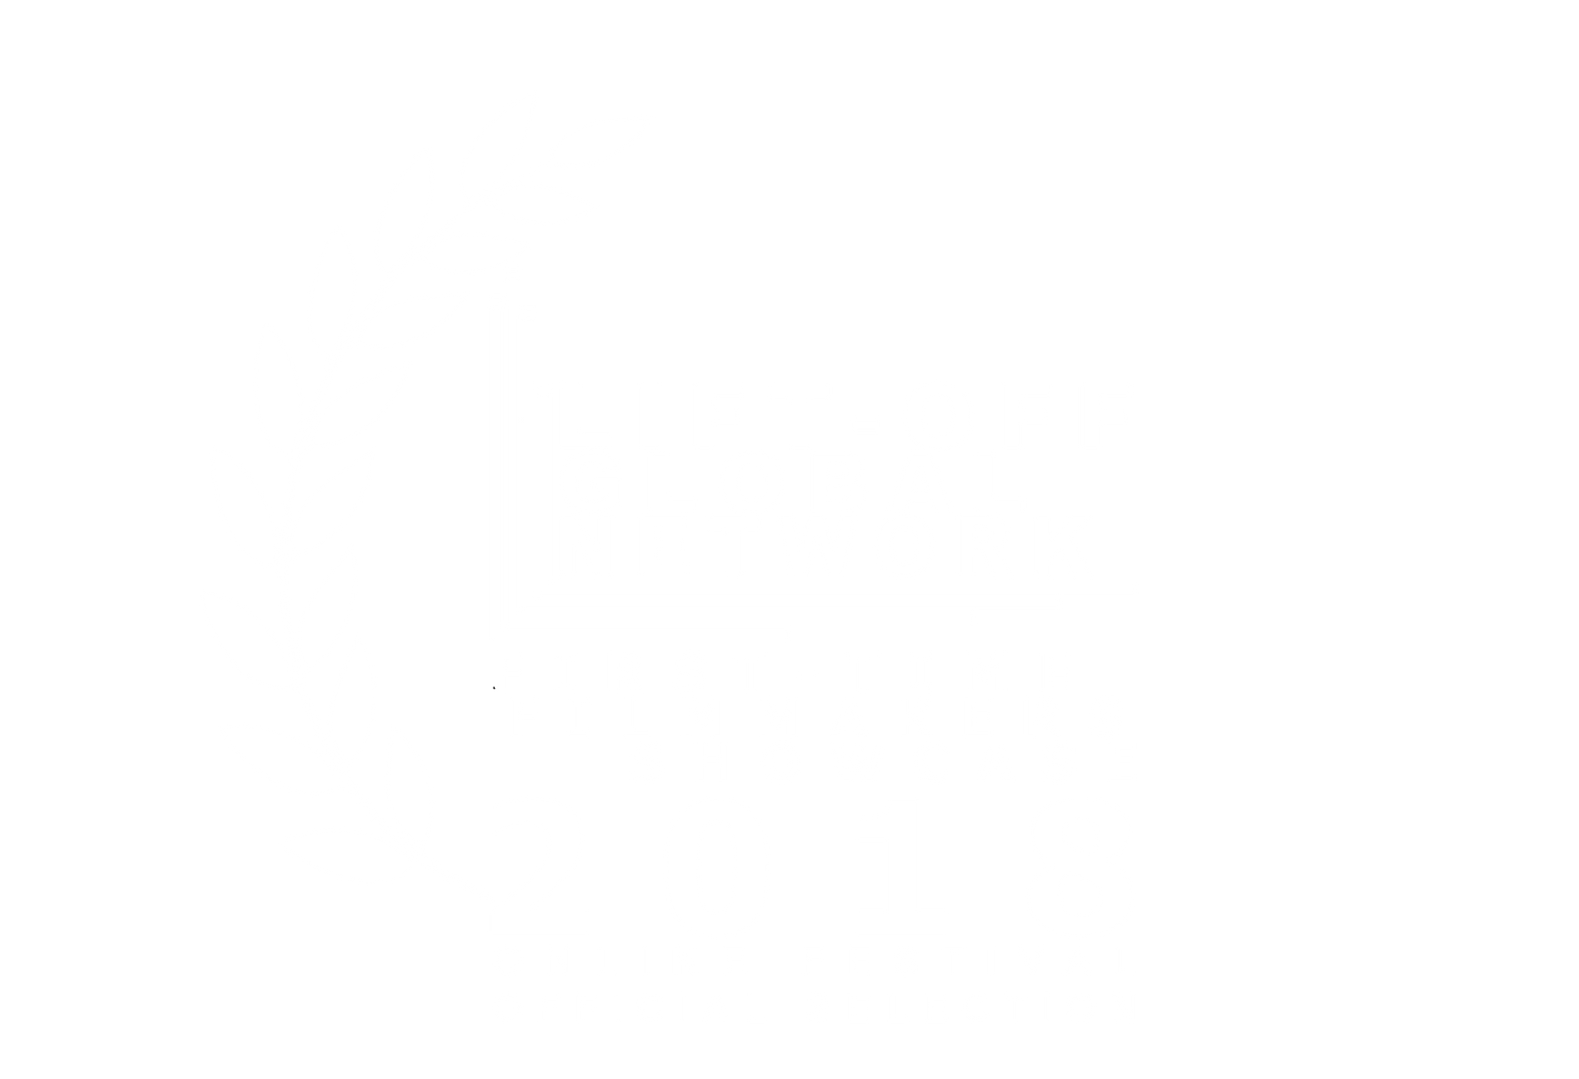 First-Time Filmmakers Showcase 2018 - On